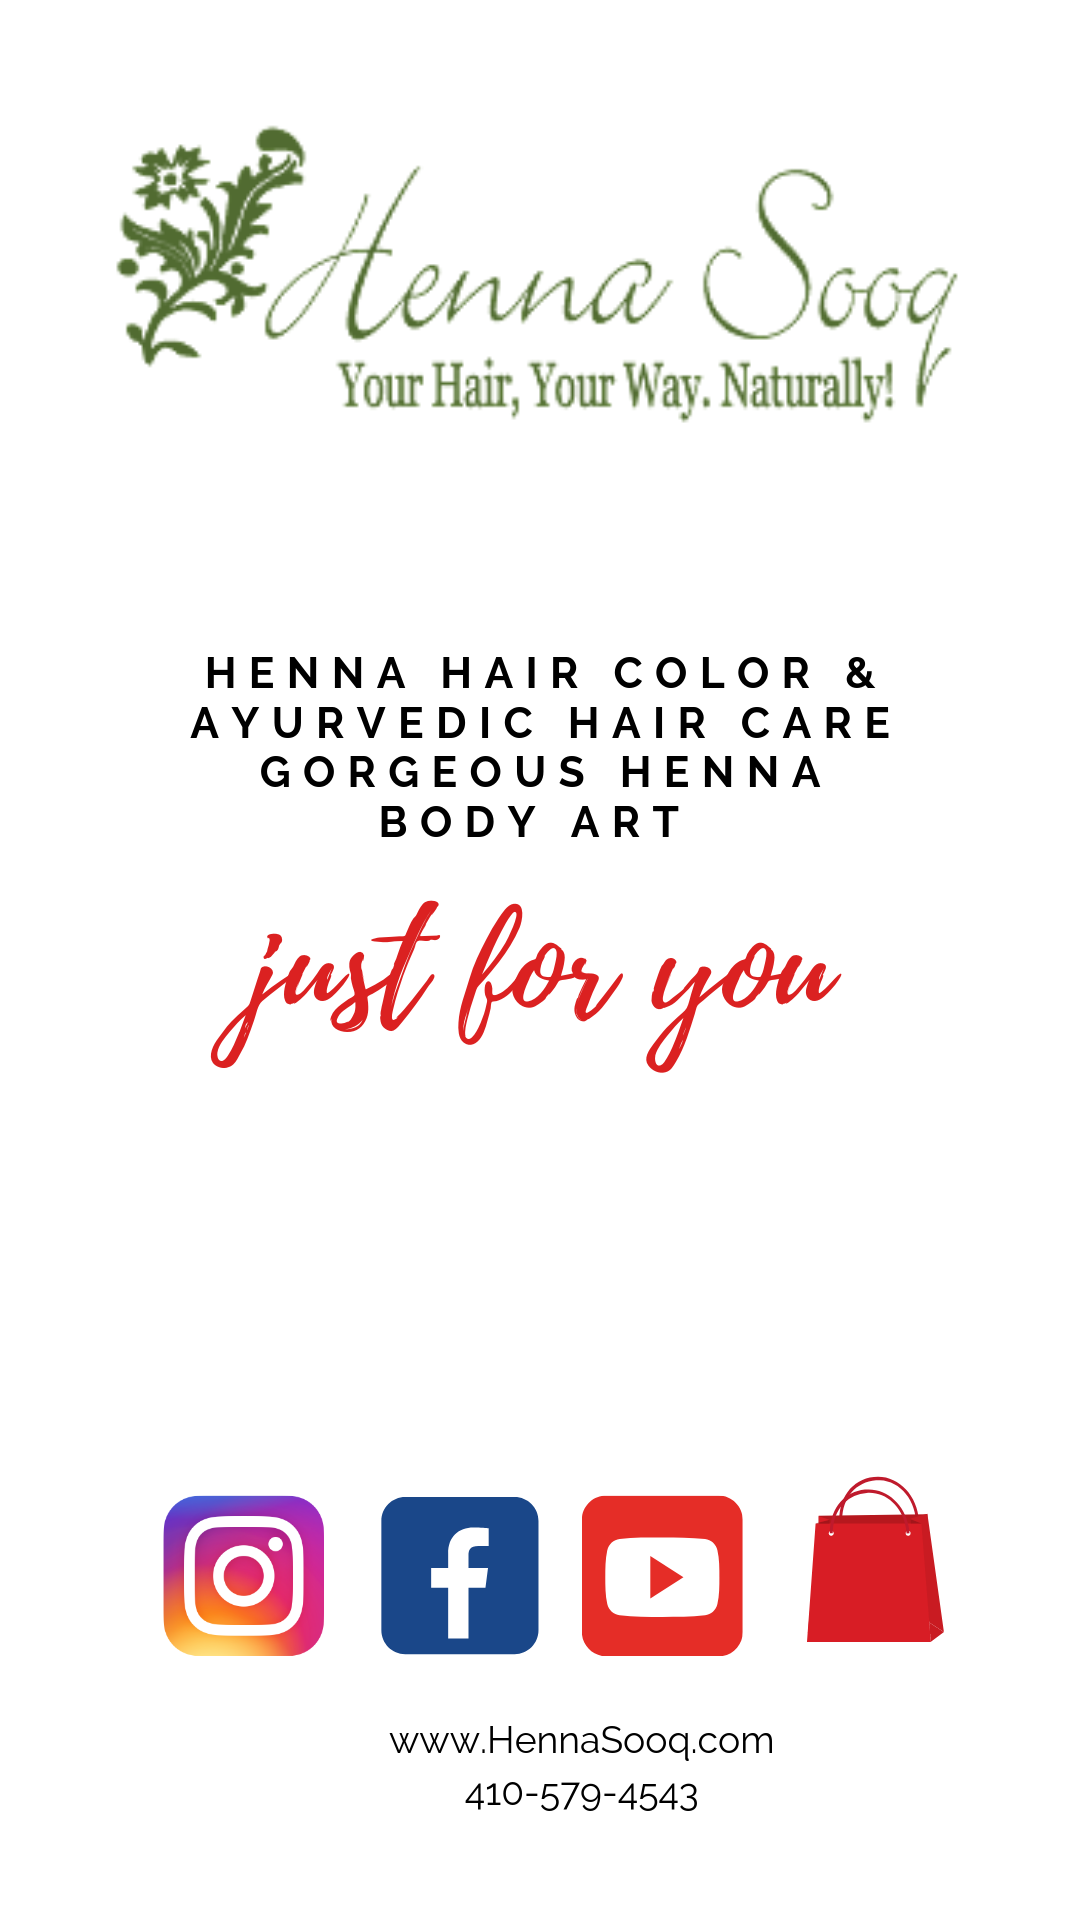 Henna Tattoo Kits For Sale: SALE! Henna For Hair And Henna Body Art Just For You. Not